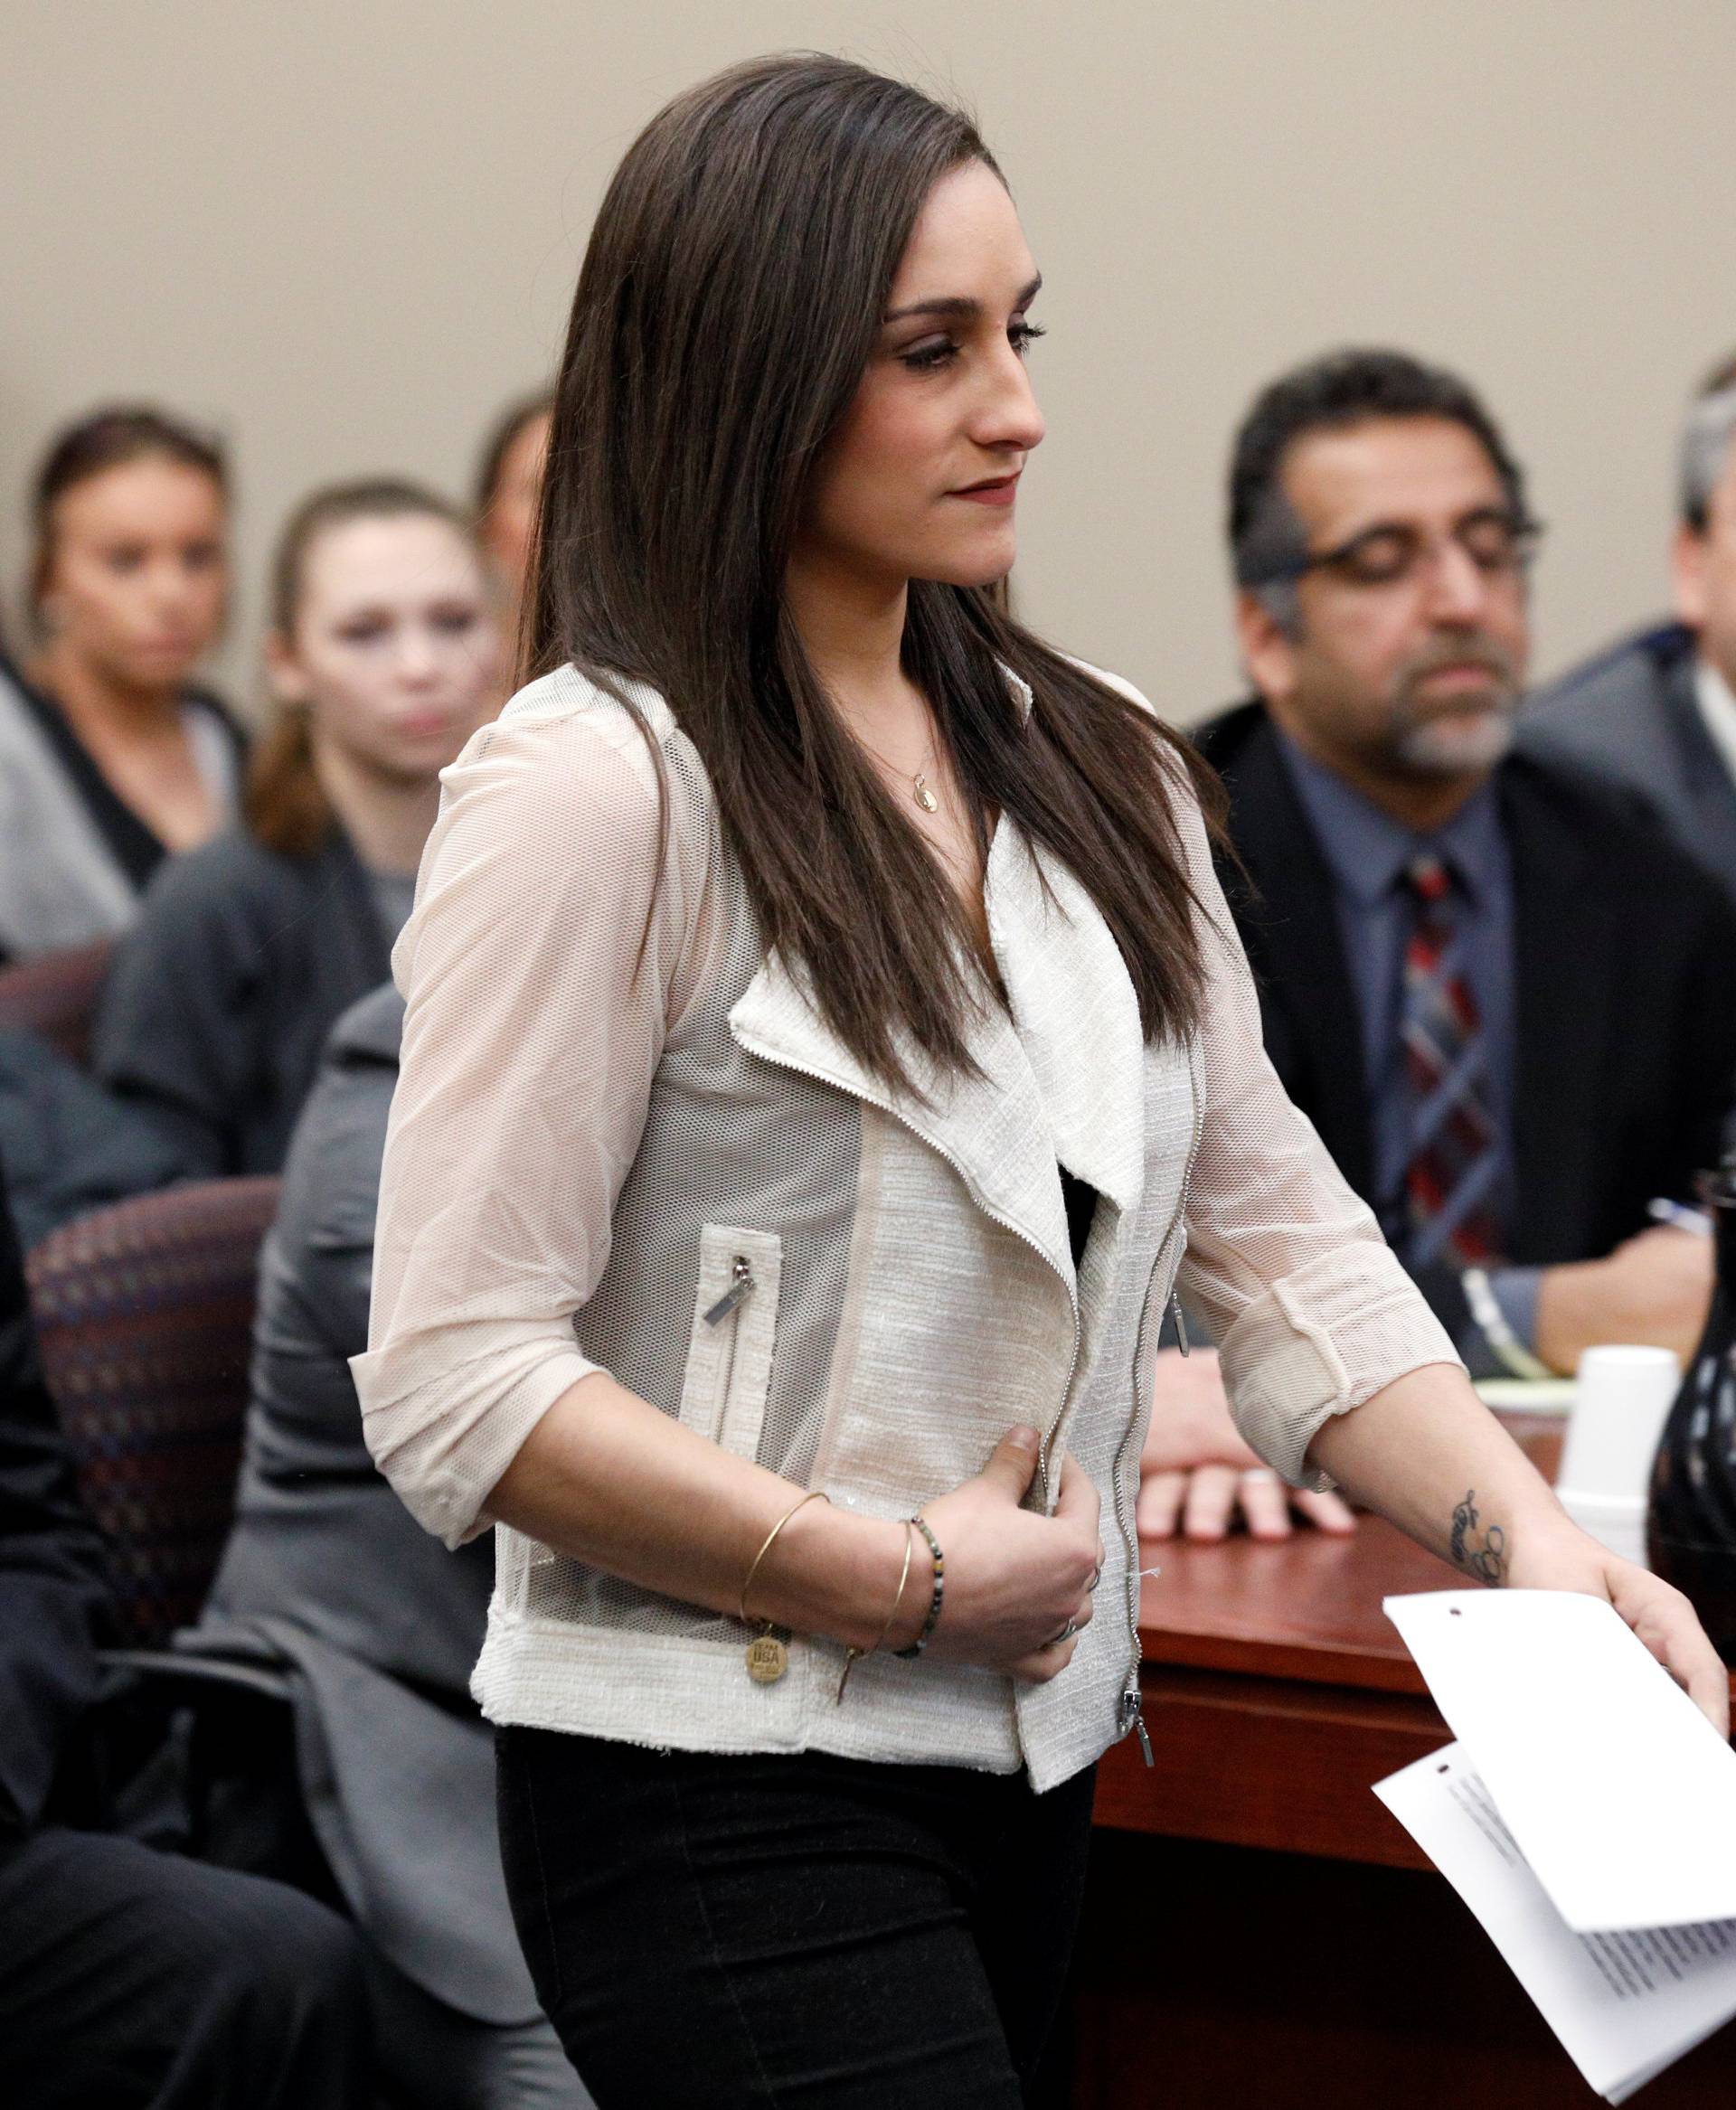 Victim and former gymnast Jordyn Wieber walks to the podium to speak at the sentencing hearing for Larry Nassar, a former team USA Gymnastics doctor who pleaded guilty in November 2017 to sexual assault charges, in Lansing